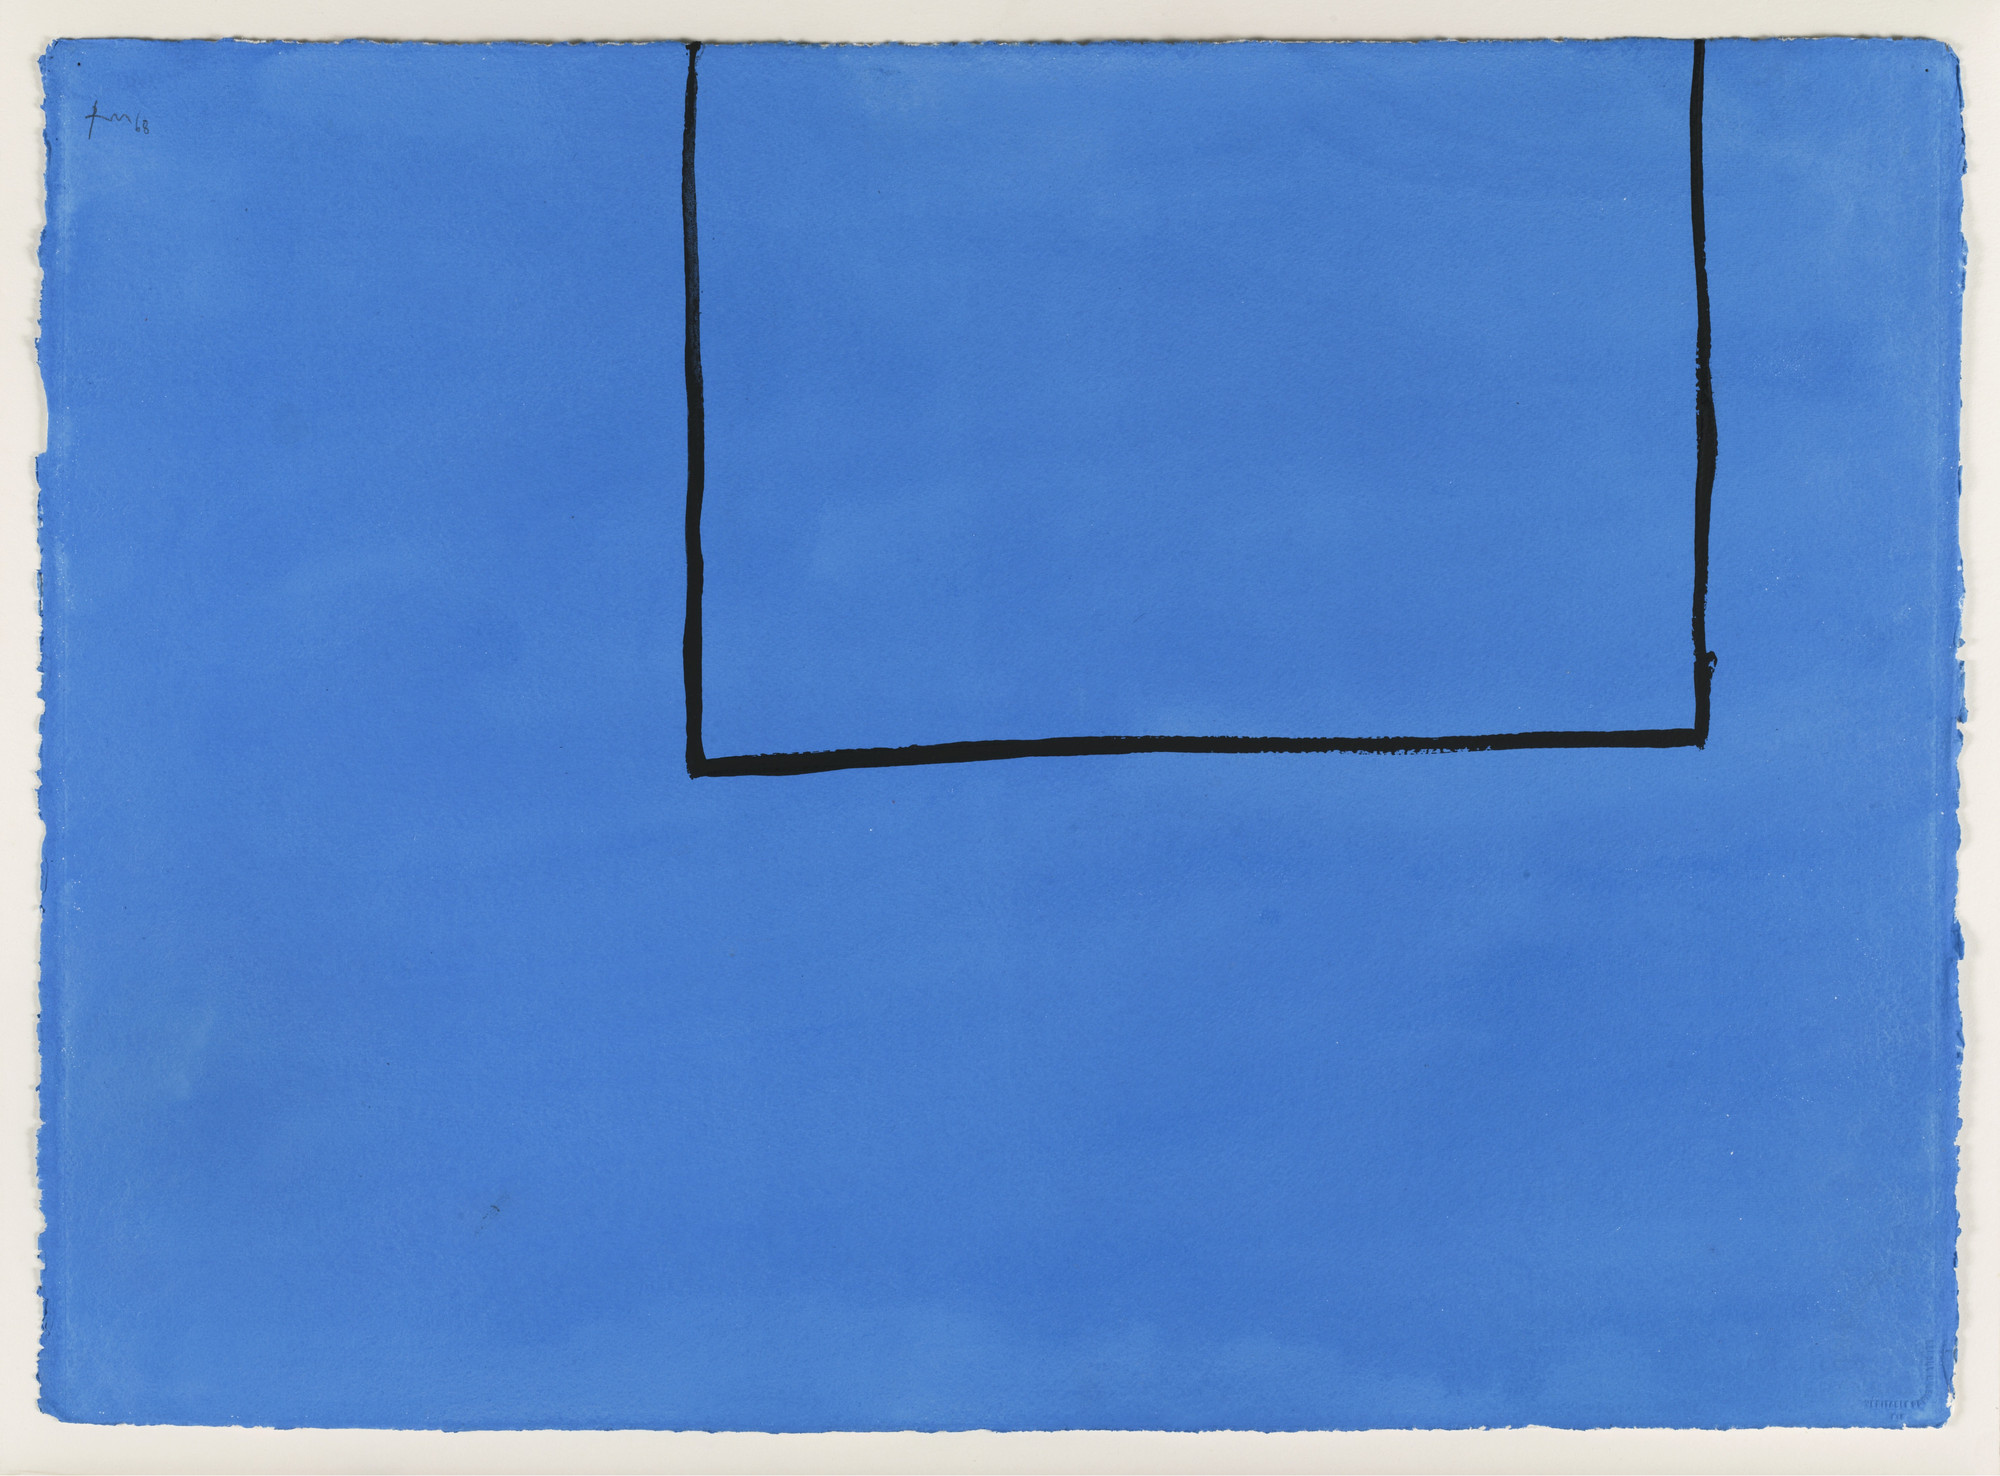 Robert Motherwell. Open Study #8A (In Blue with Black Line). 1968